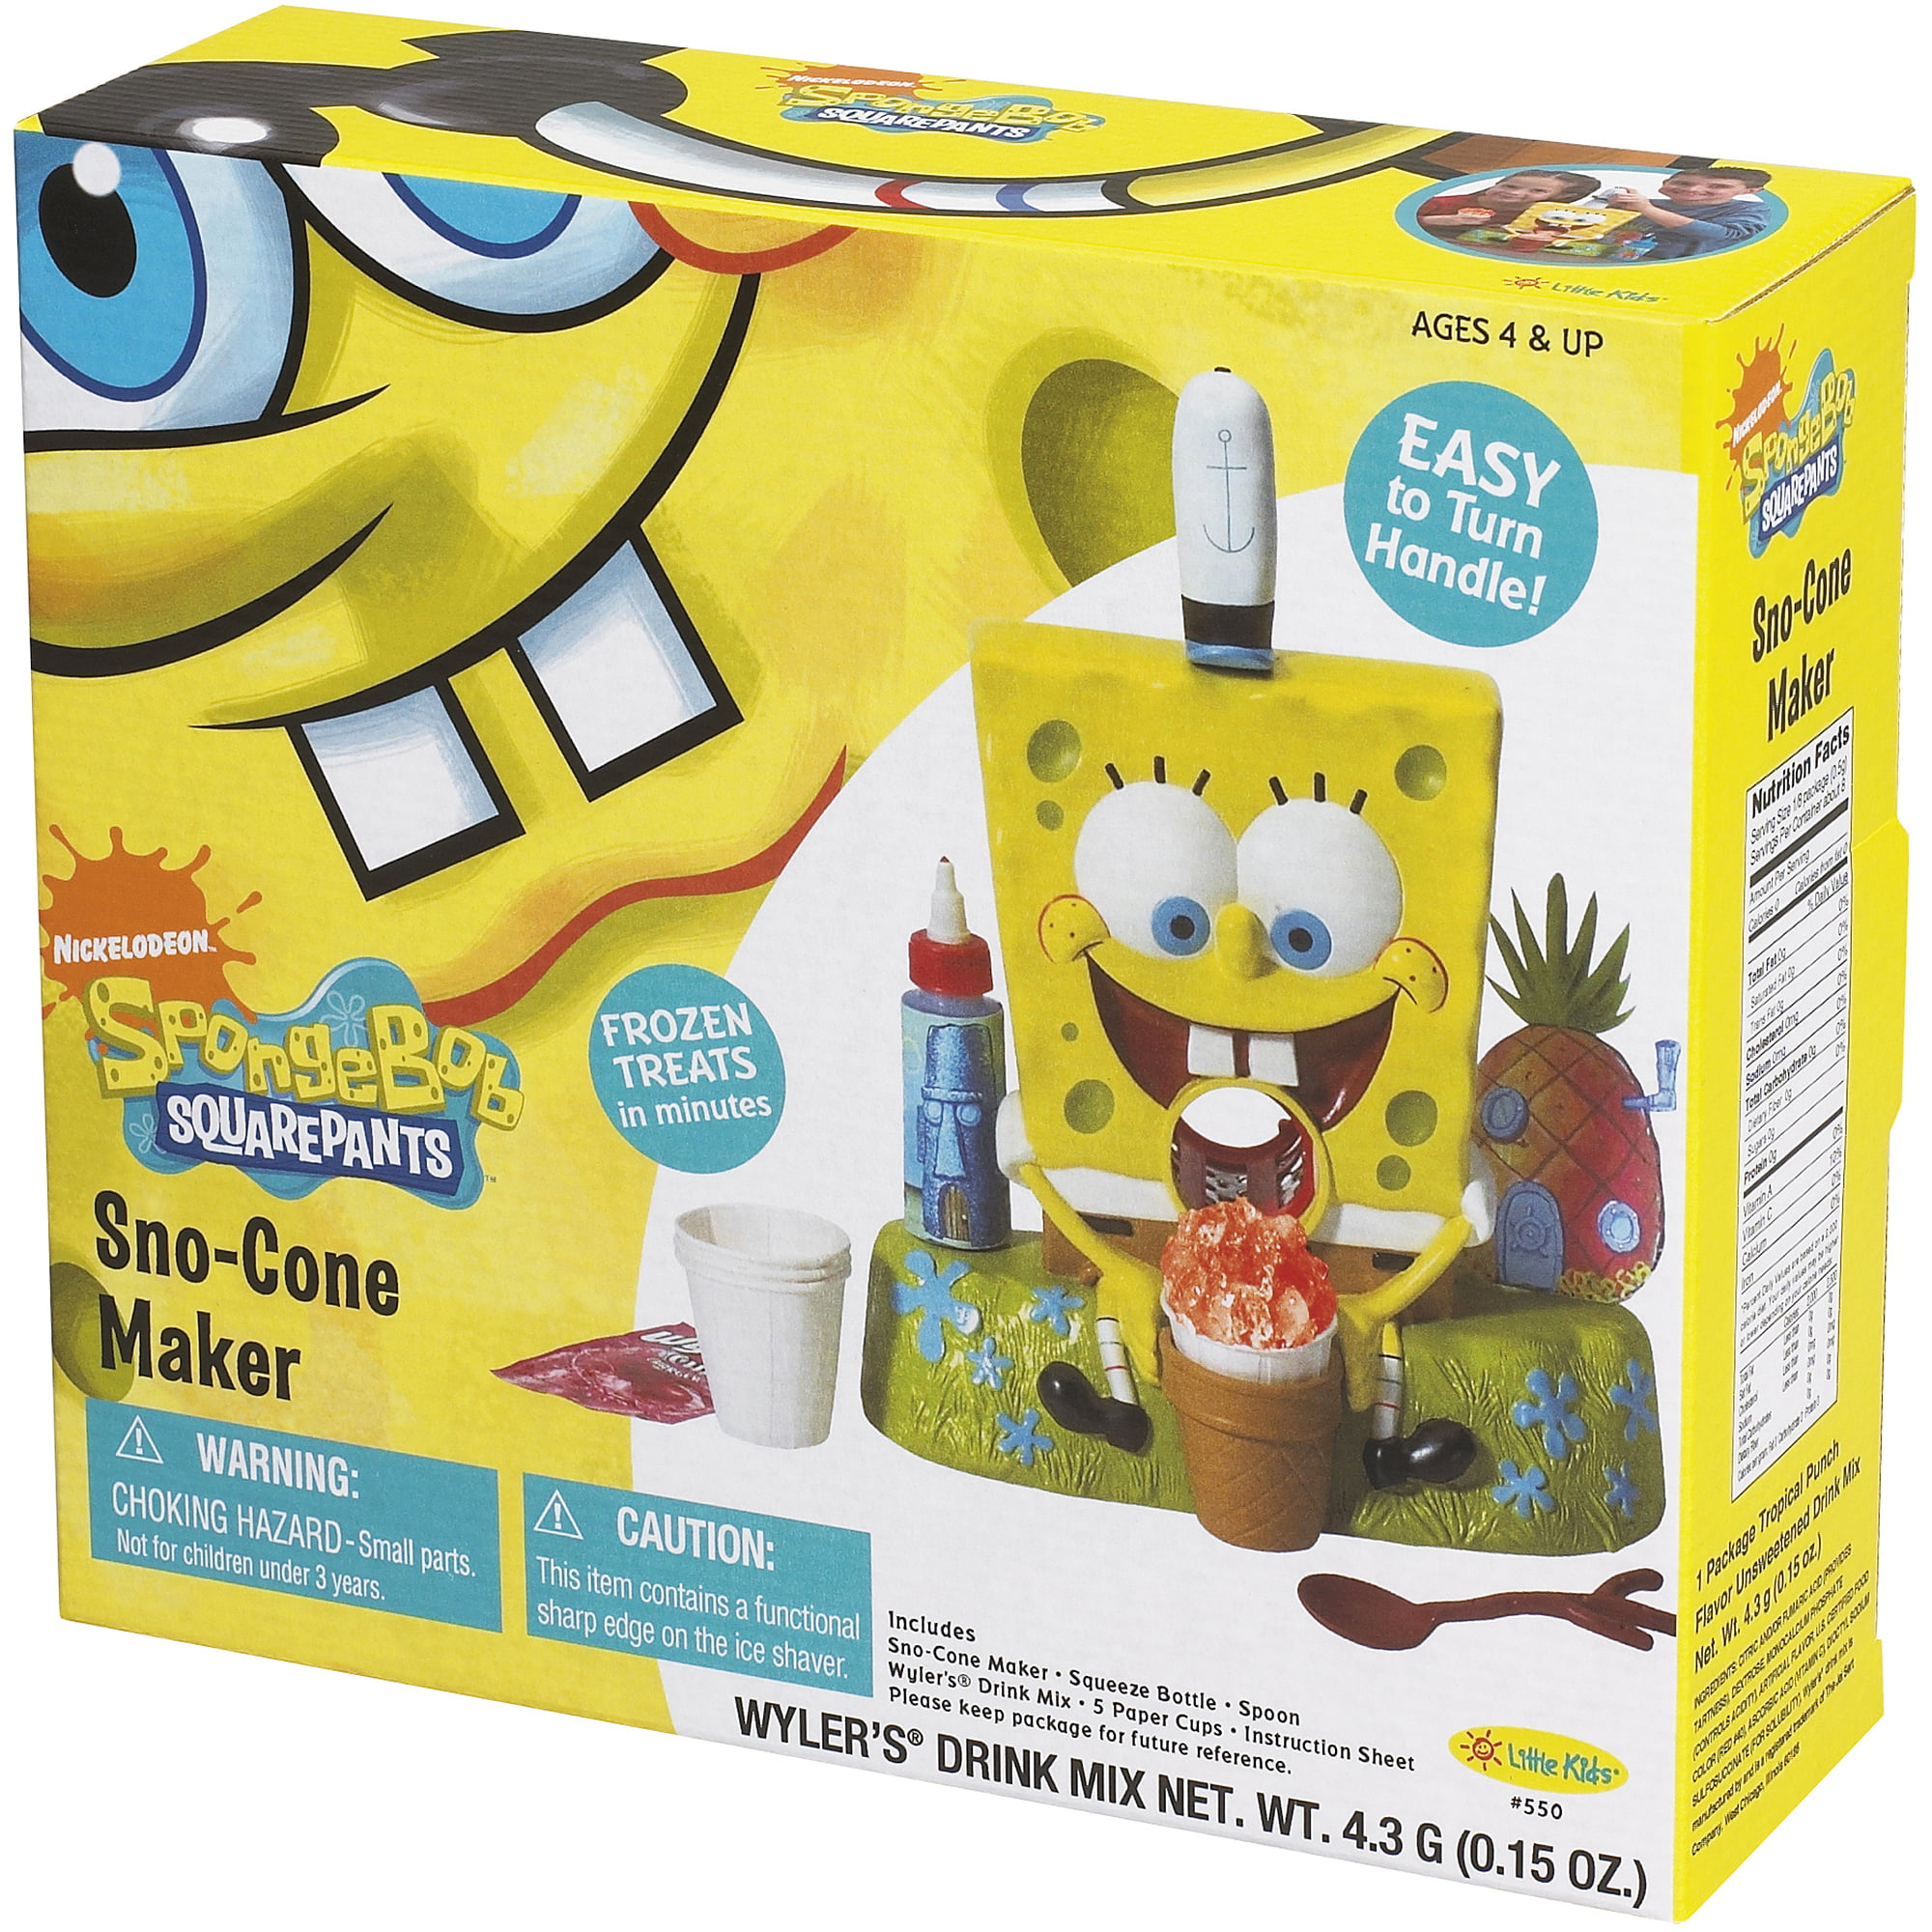 Little kids spongebob squarepants sno cone maker walmart stopboris Image collections